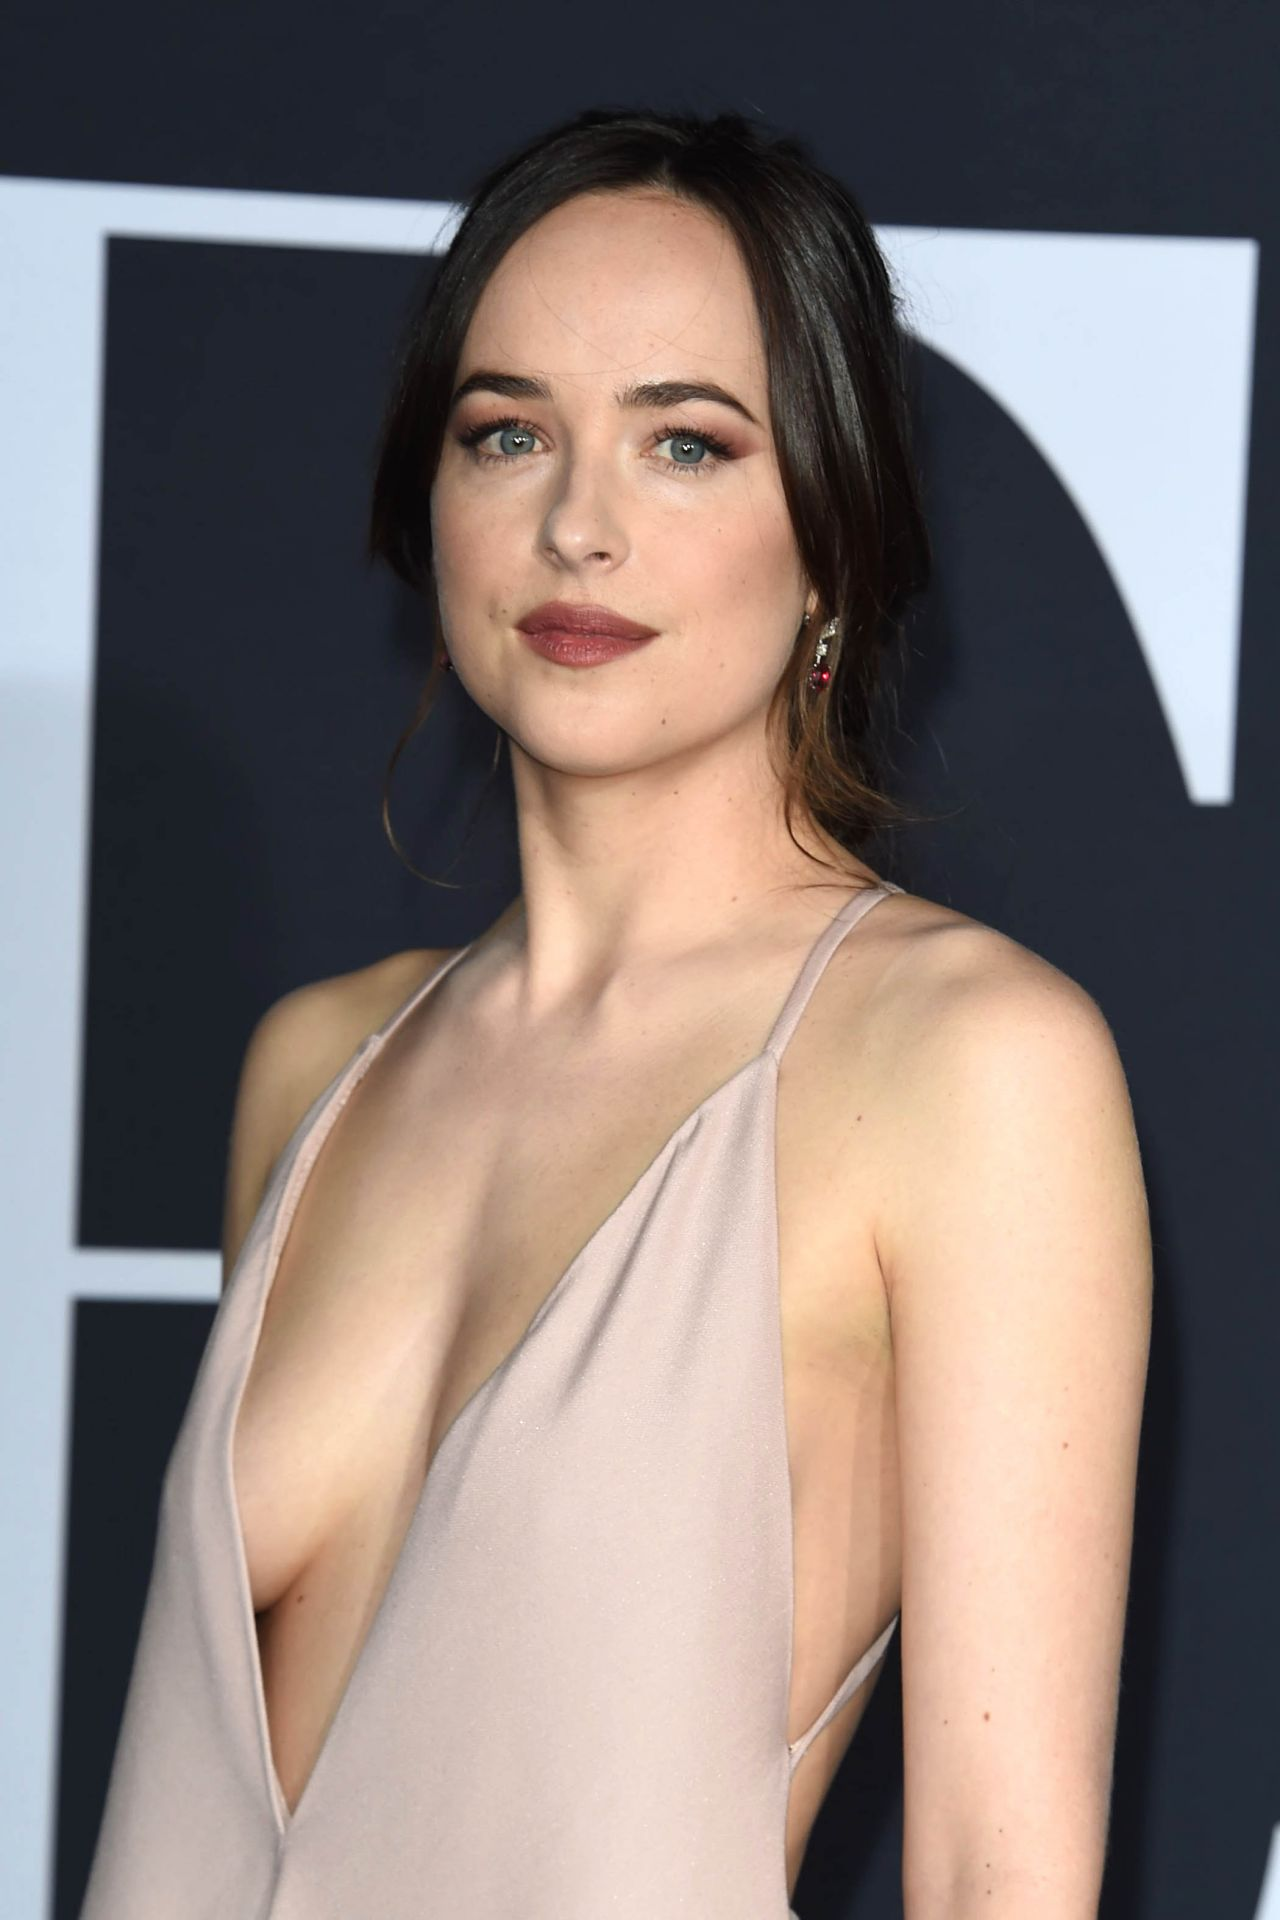 The Fifty Shades Darker premiere nearly had a nip slip on